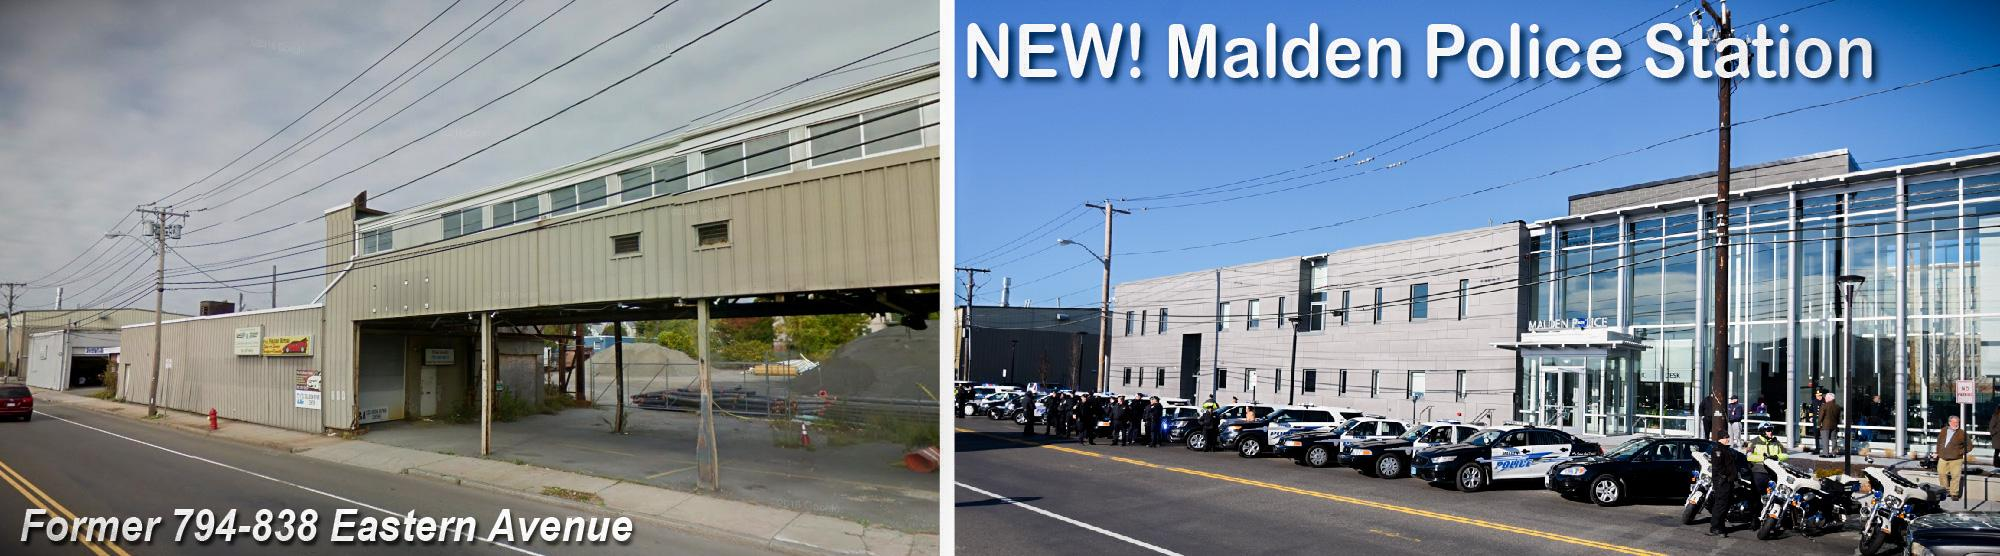 Malden Police Headquarters